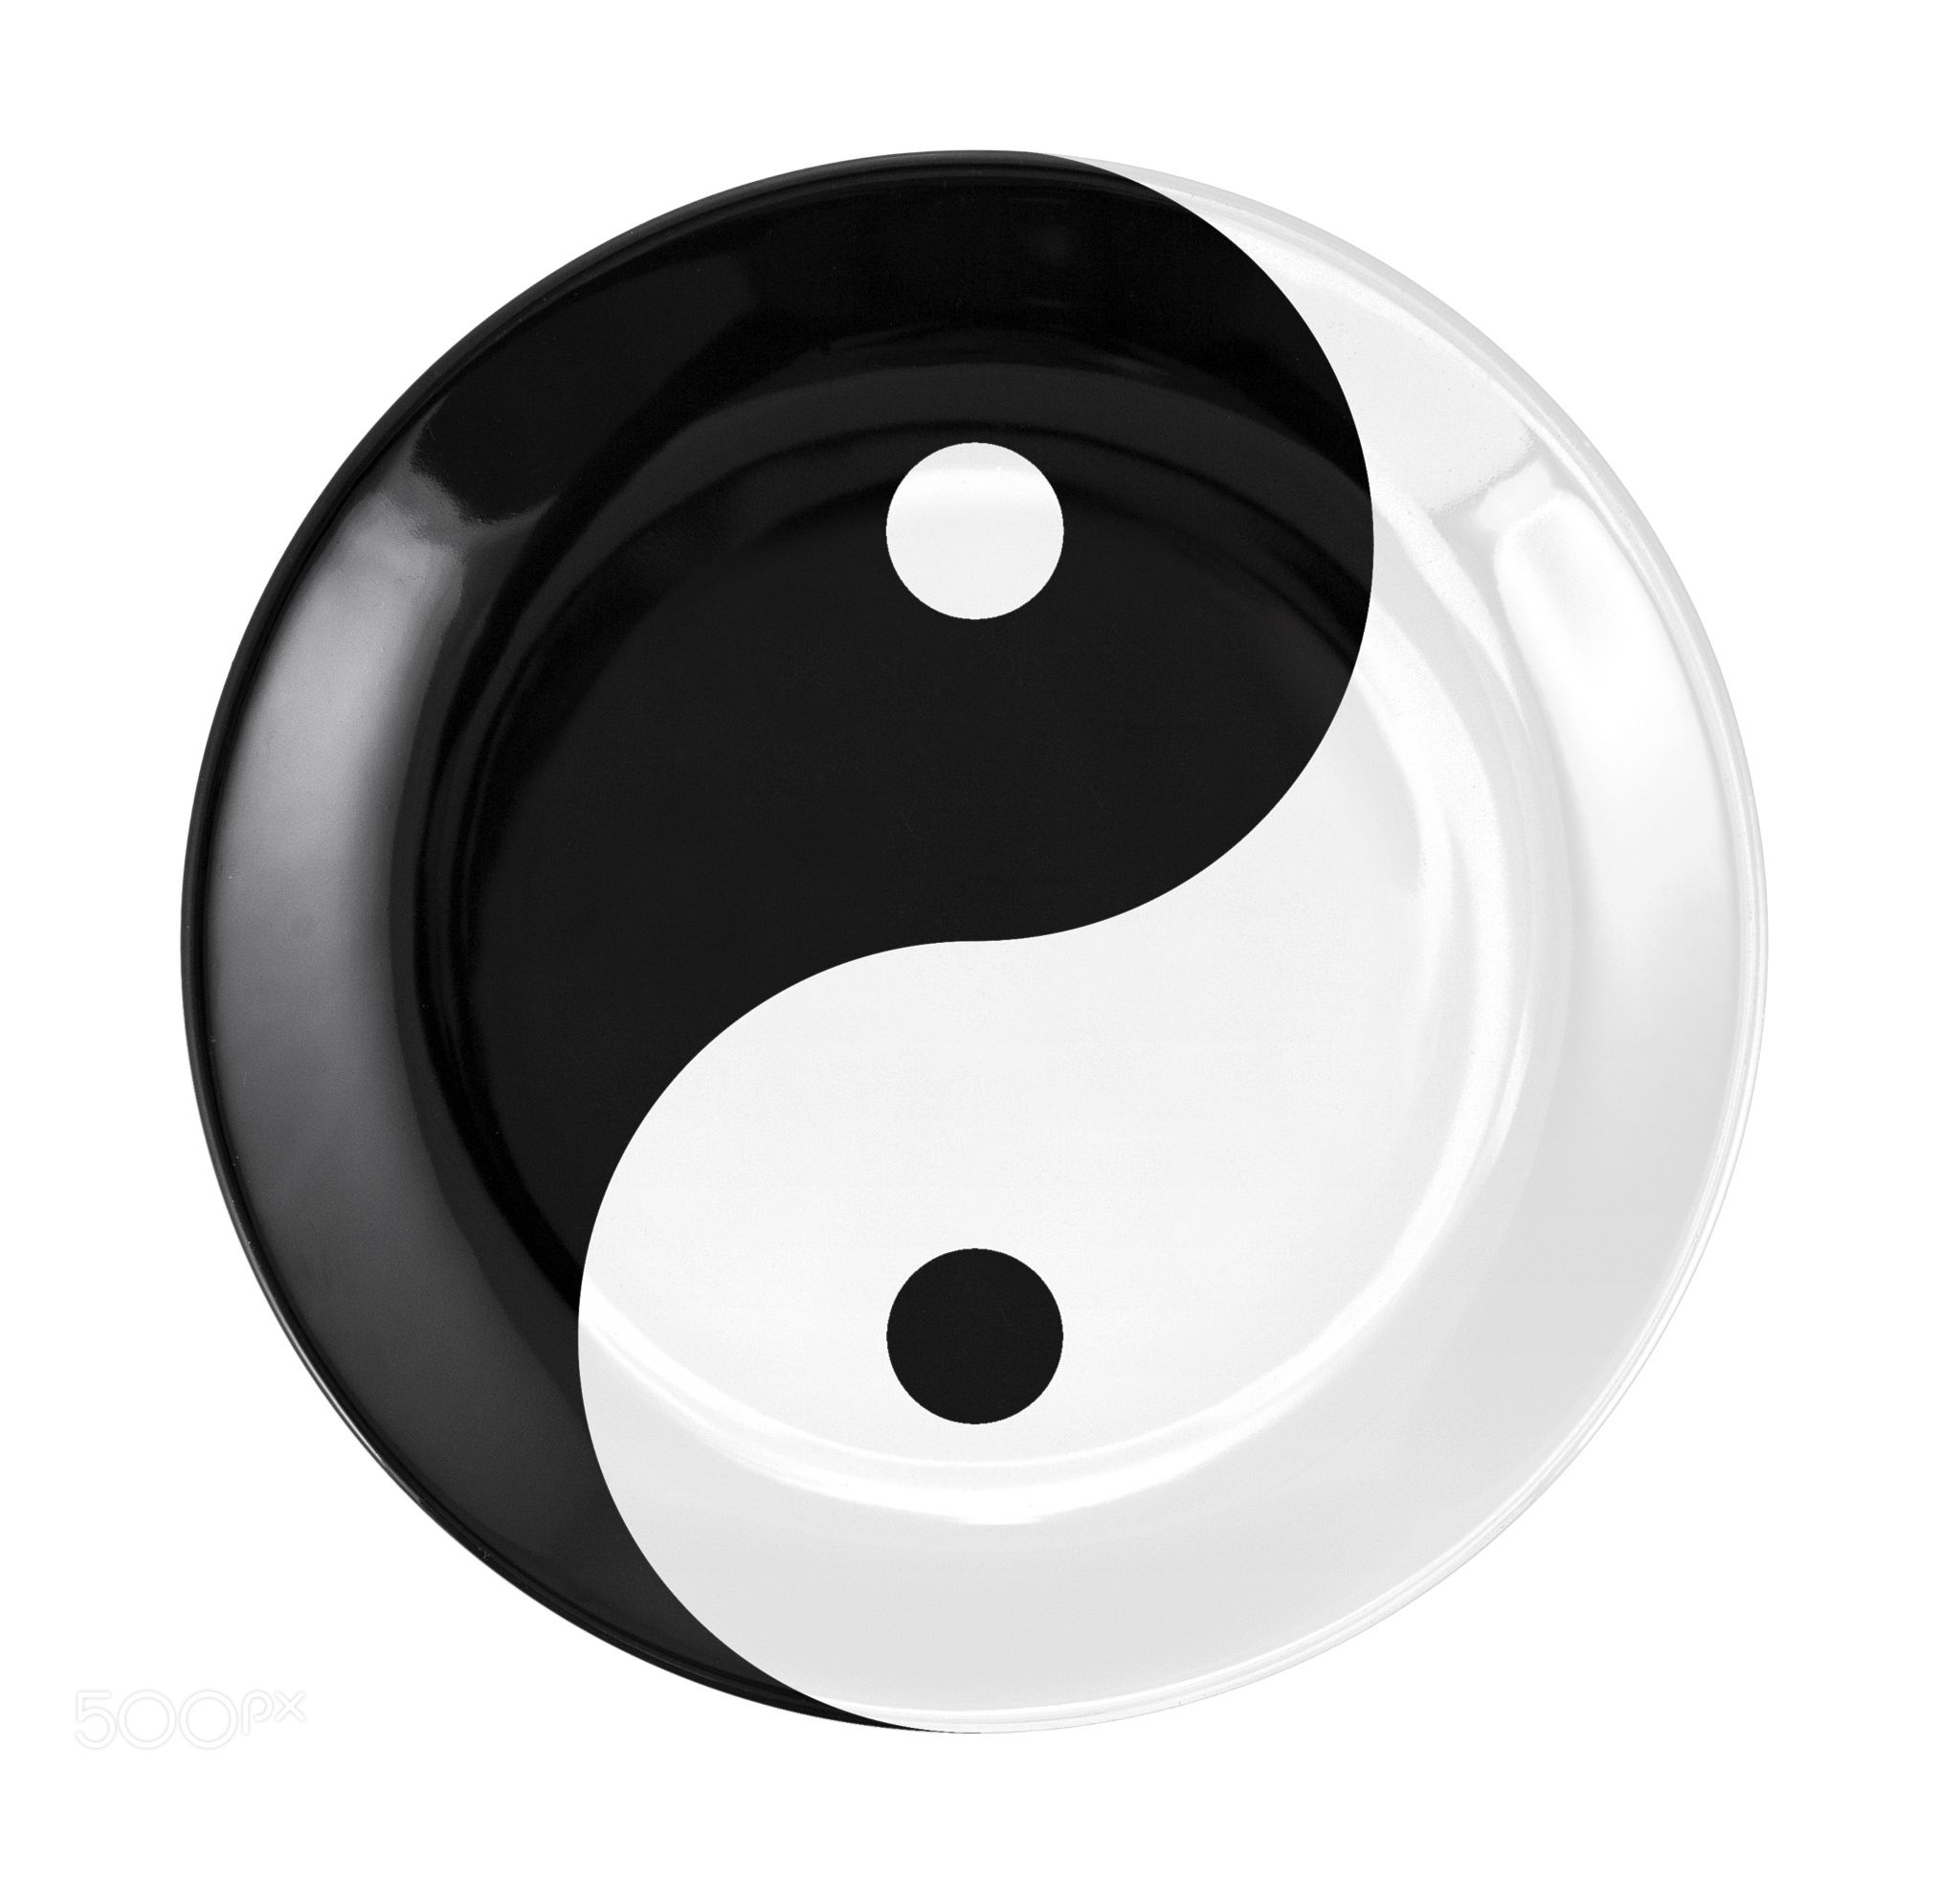 Round Flat Plate With Yin And Yang Symbol Plate With Yin Yang